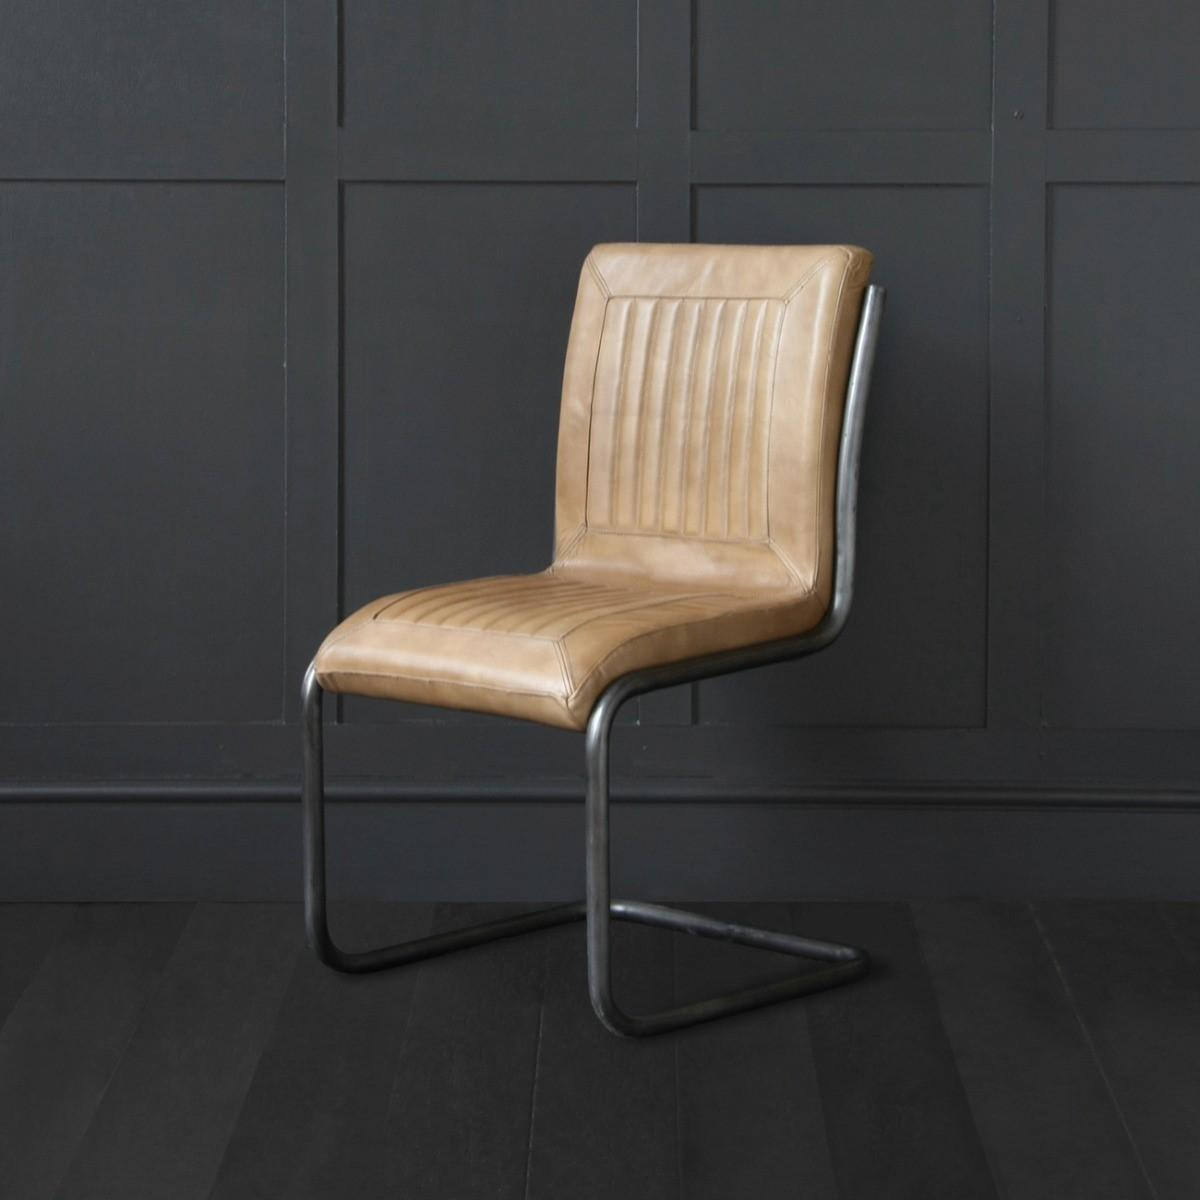 Best Industrial Chairs to Use in the Home Office